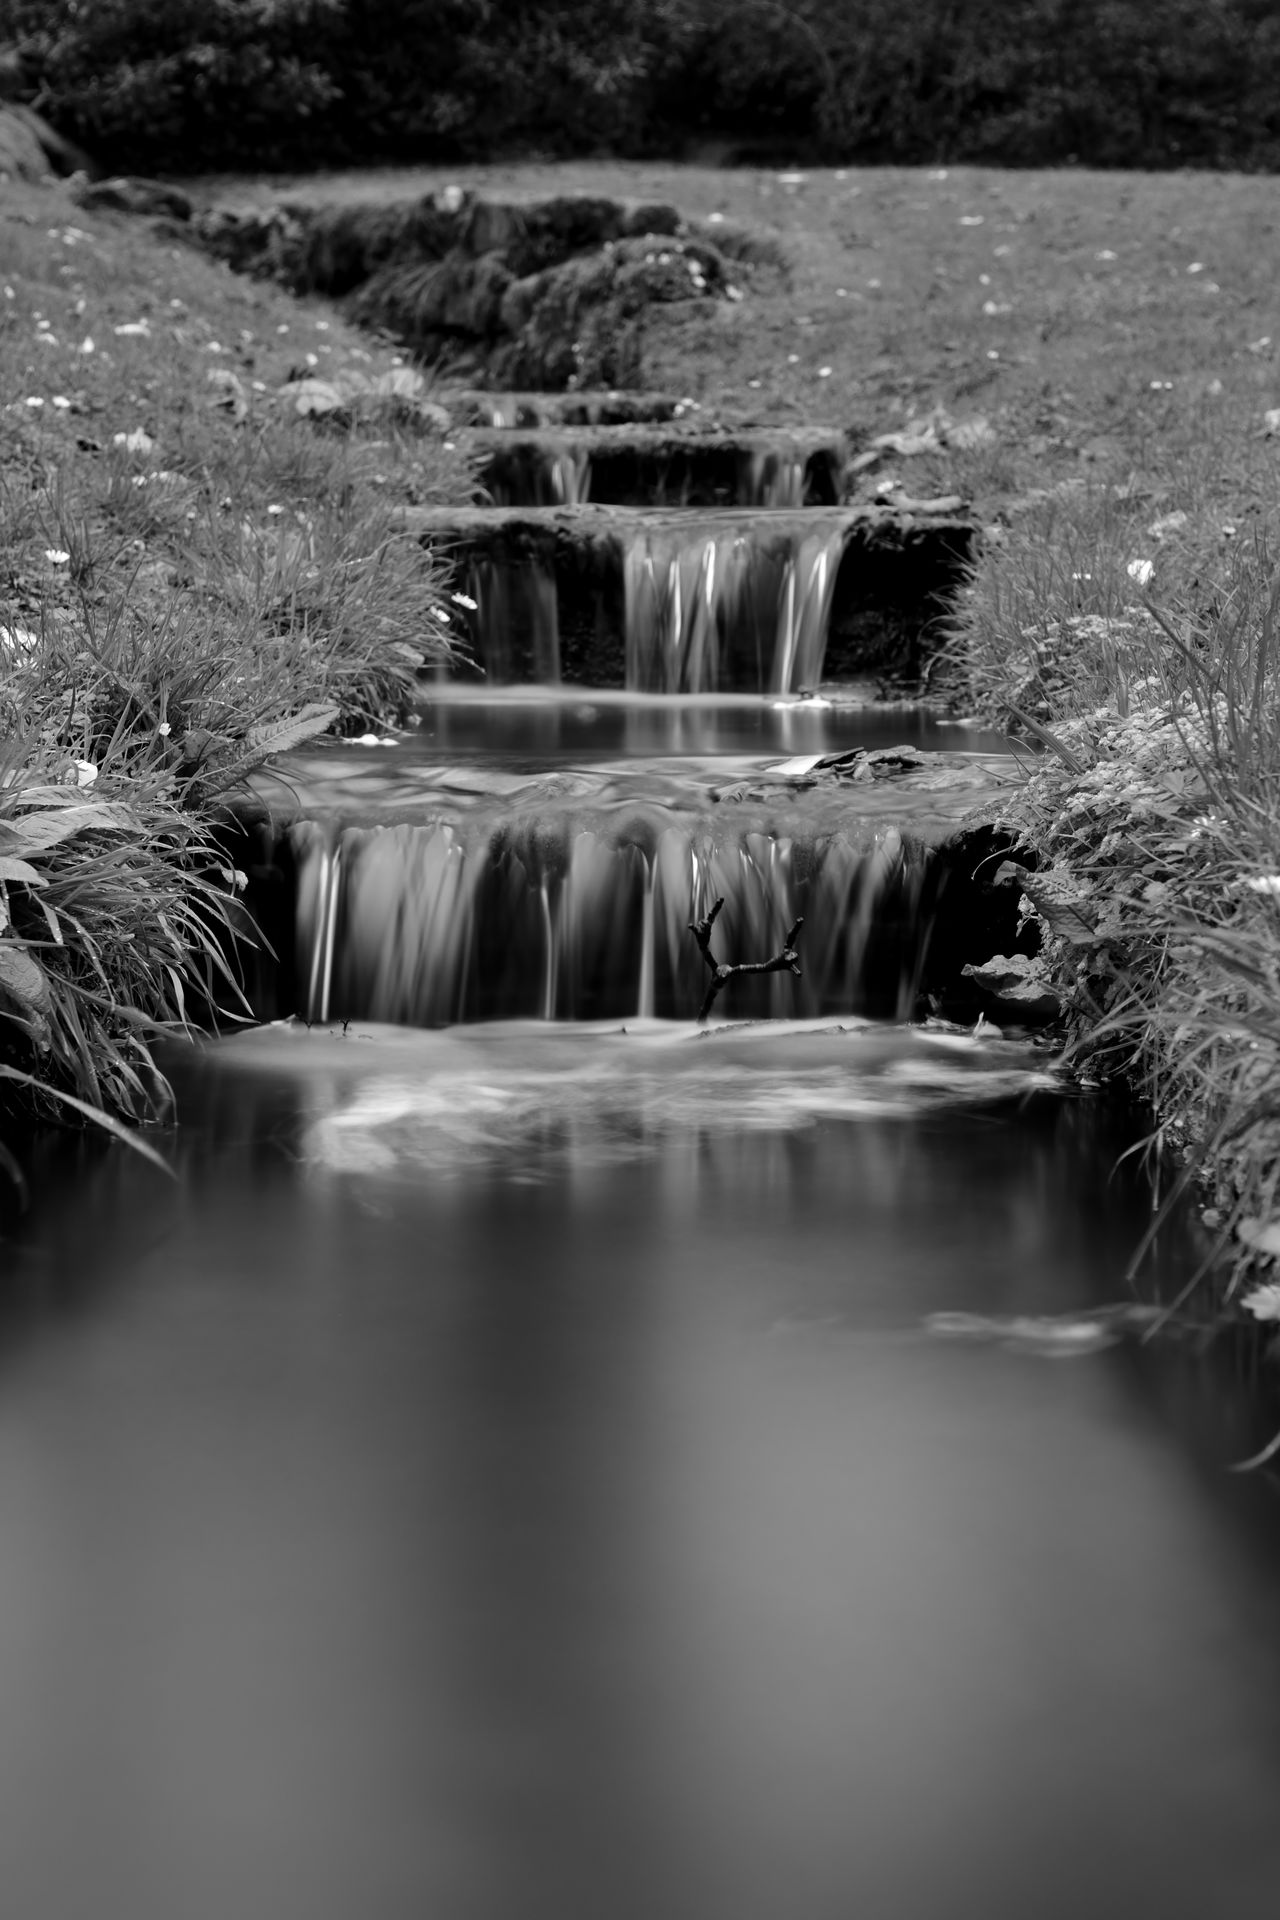 Beauty In Nature Black And White Blackandwhite City Close-up Day Eye4photography  EyeEm Best Shots EyeEm Gallery EyeEm Nature Lover Idyllic Landscape Monochrome Nature Nature Photography Nature_collection Naturelovers No People Outdoors Scenics Taking Photos Tranquil Scene Tranquility Water Waterfall